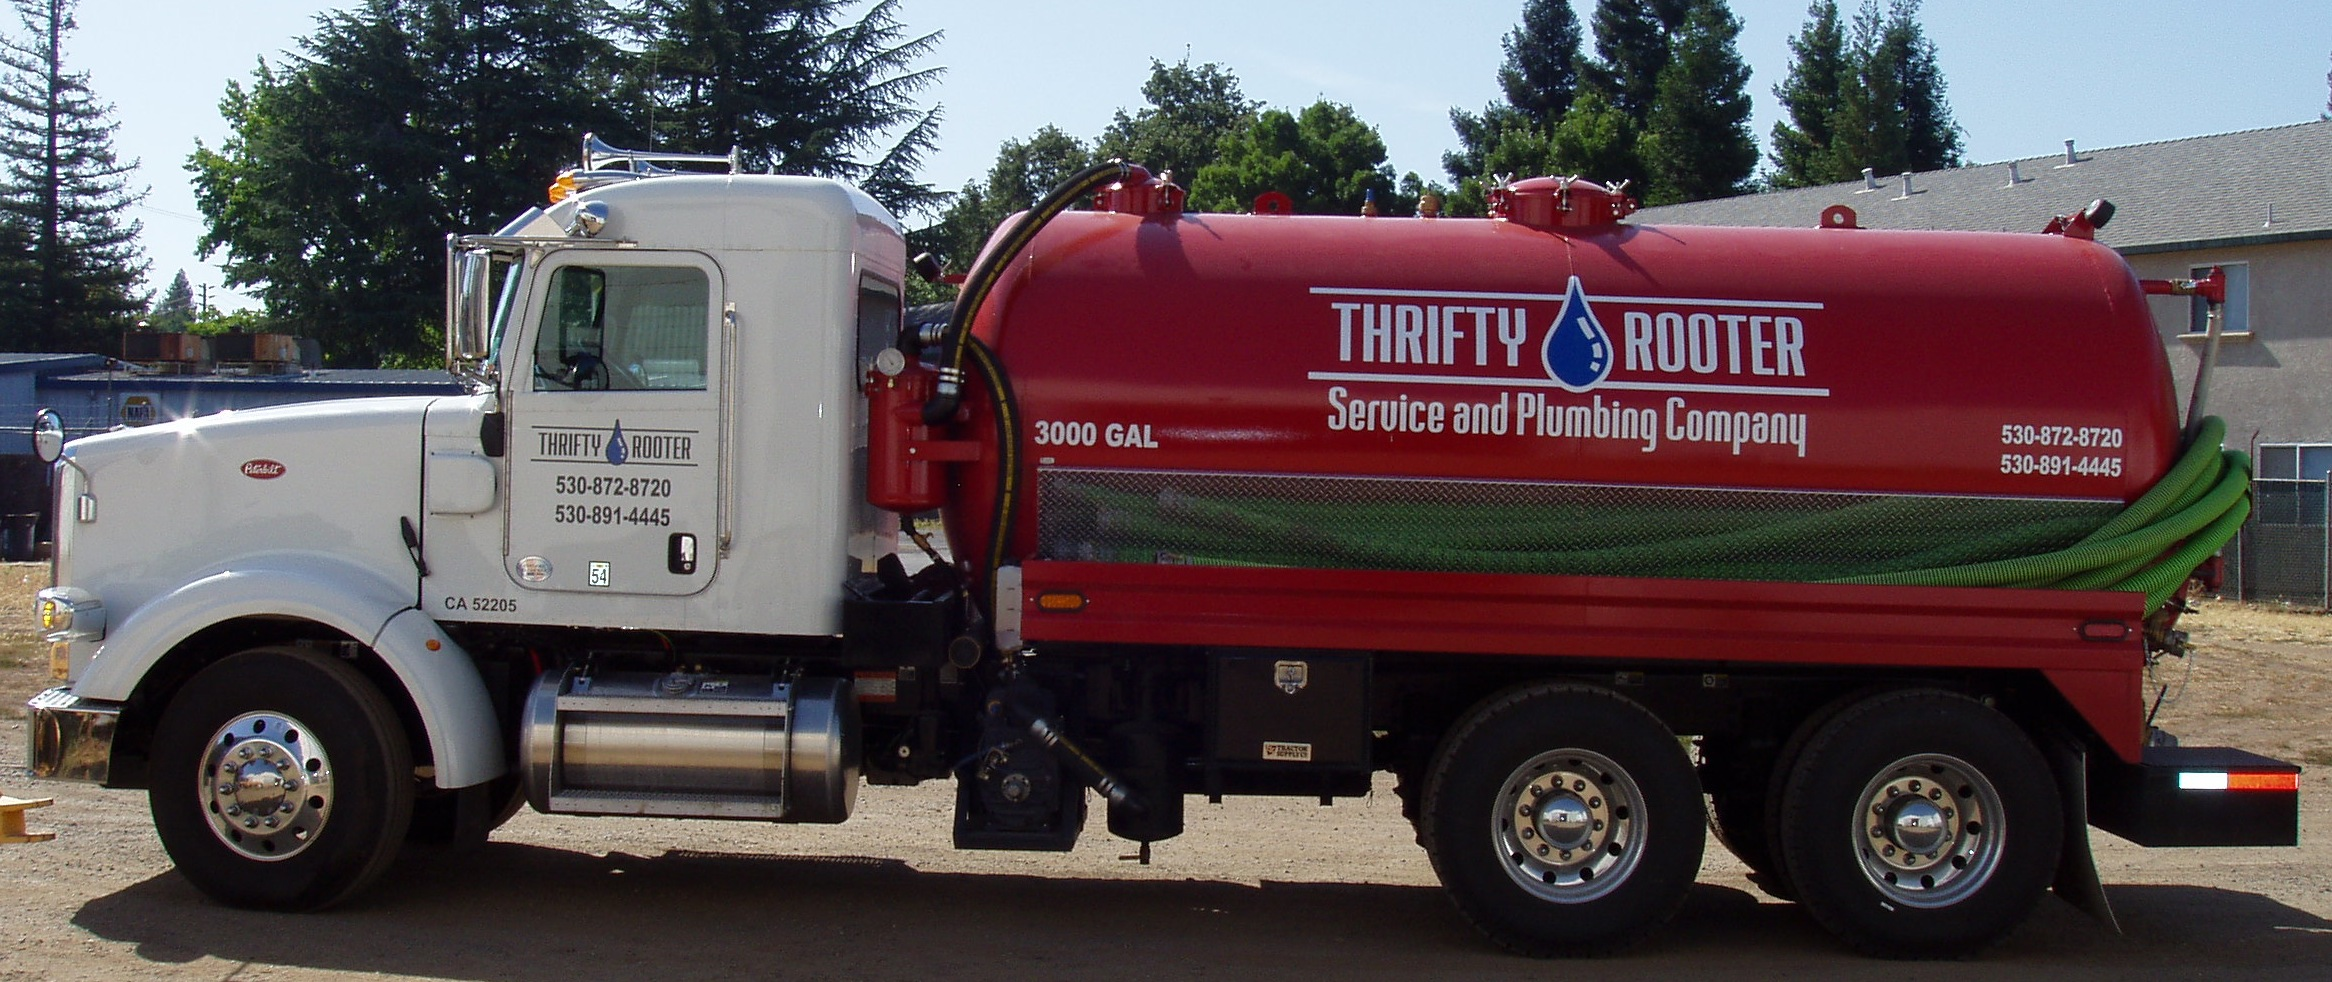 2014 Peterbilt Septic Pump Truck Built by R&D Hydraulics